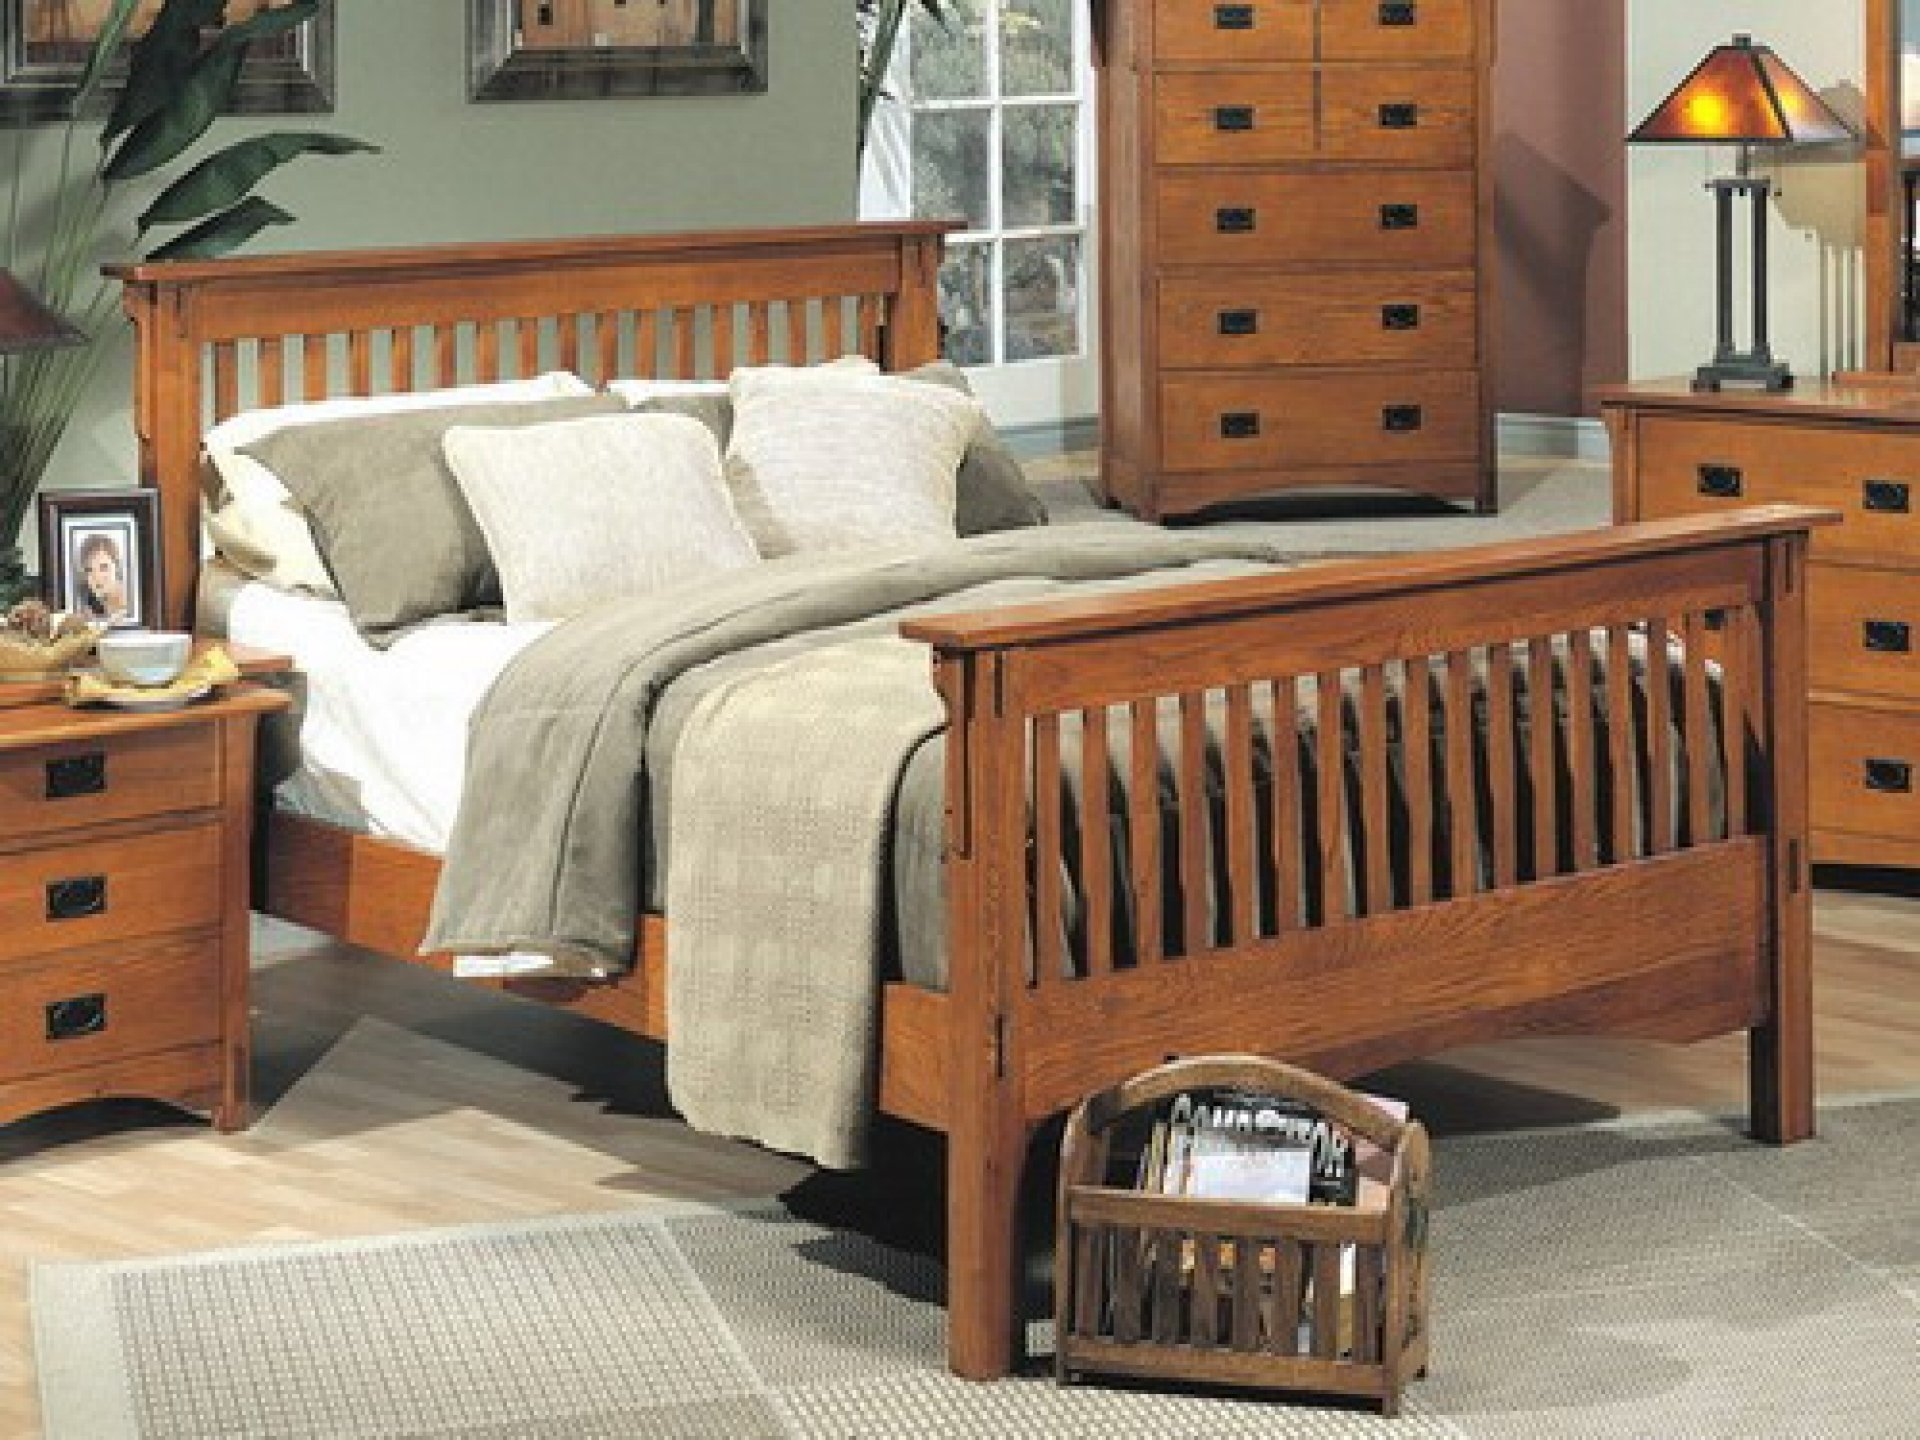 How to build a wooden bed frame 22 interesting ways for Mission style bed plans